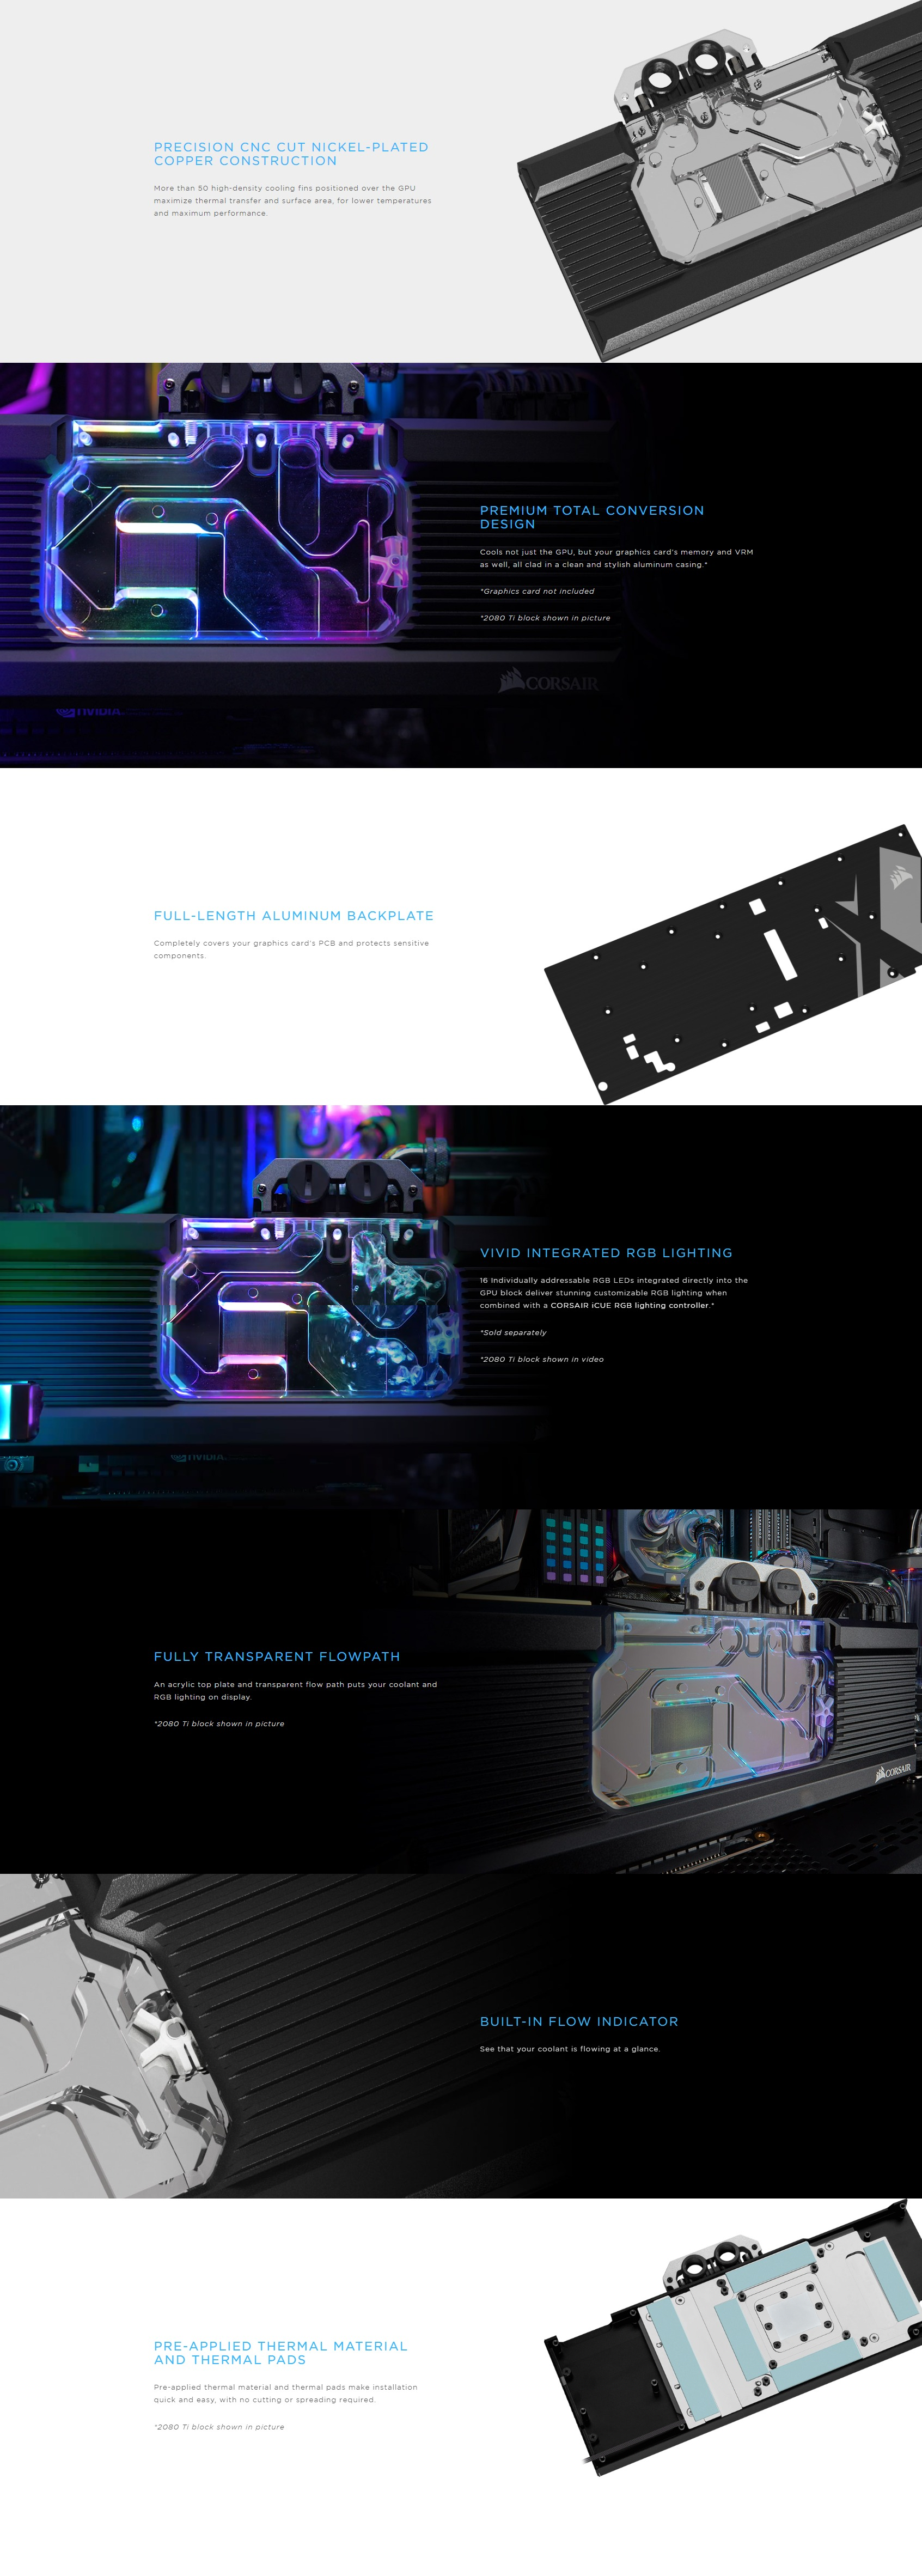 A large marketing image providing additional information about the product Corsair Hydro X Series XG7 RGB (5700 XT) GPU Waterblock - Additional alt info not provided